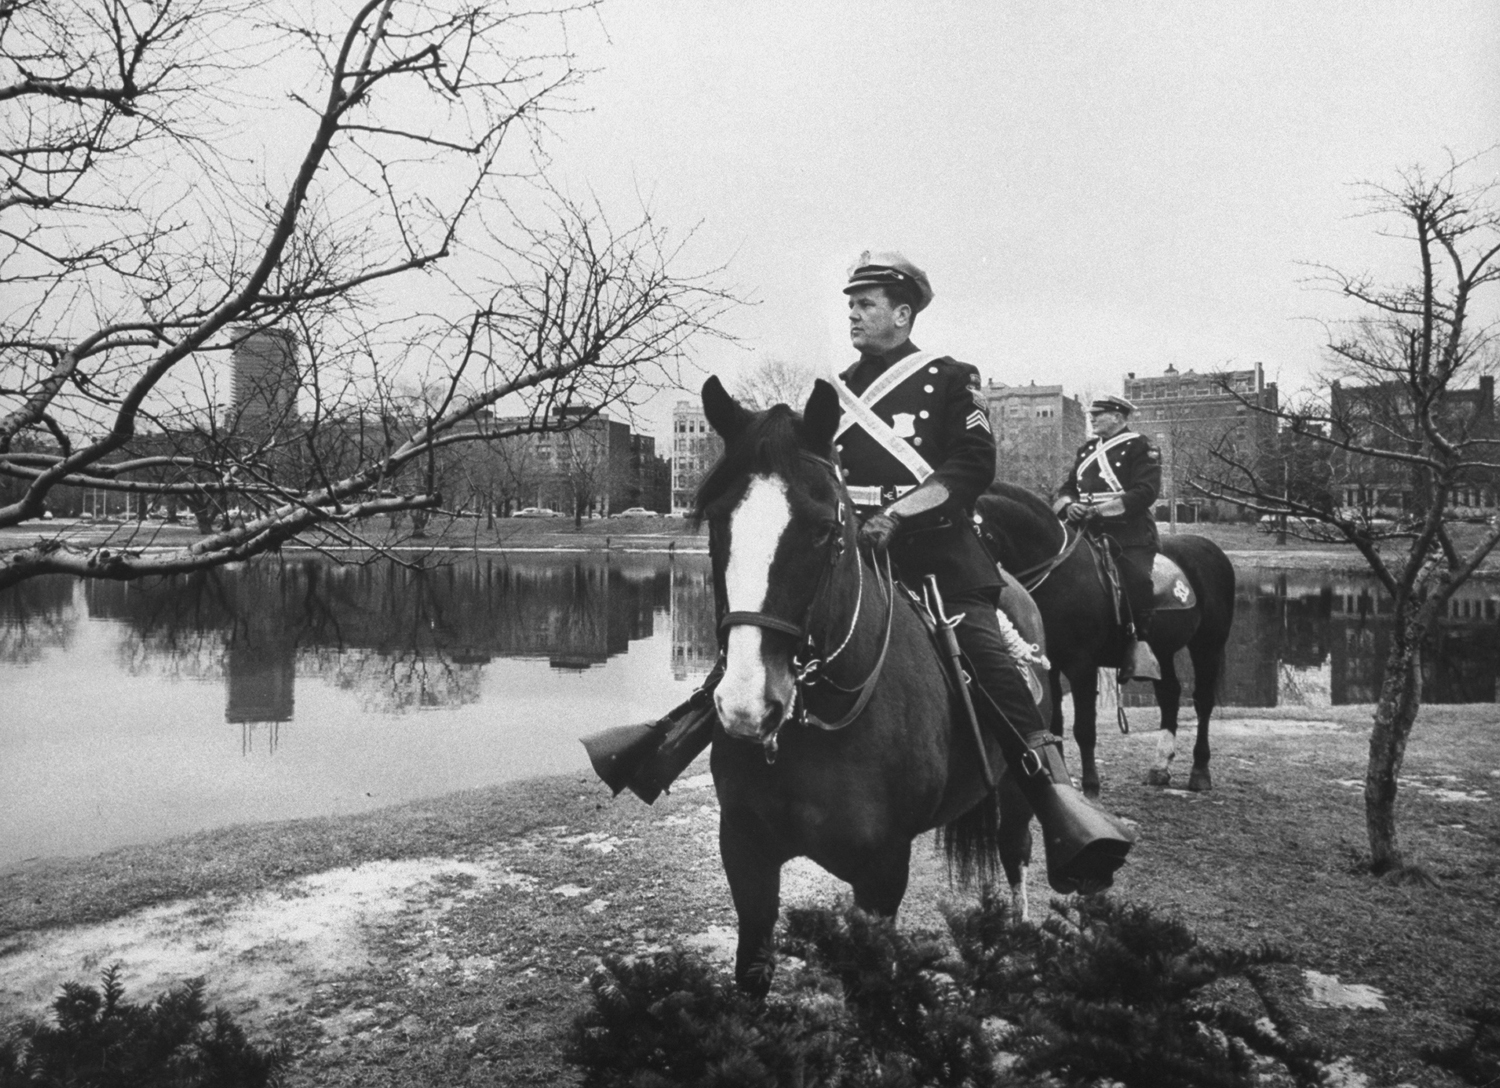 <strong>Not published in LIFE.</strong> Boston mounted police on patrol in area of stranglings, 1963.